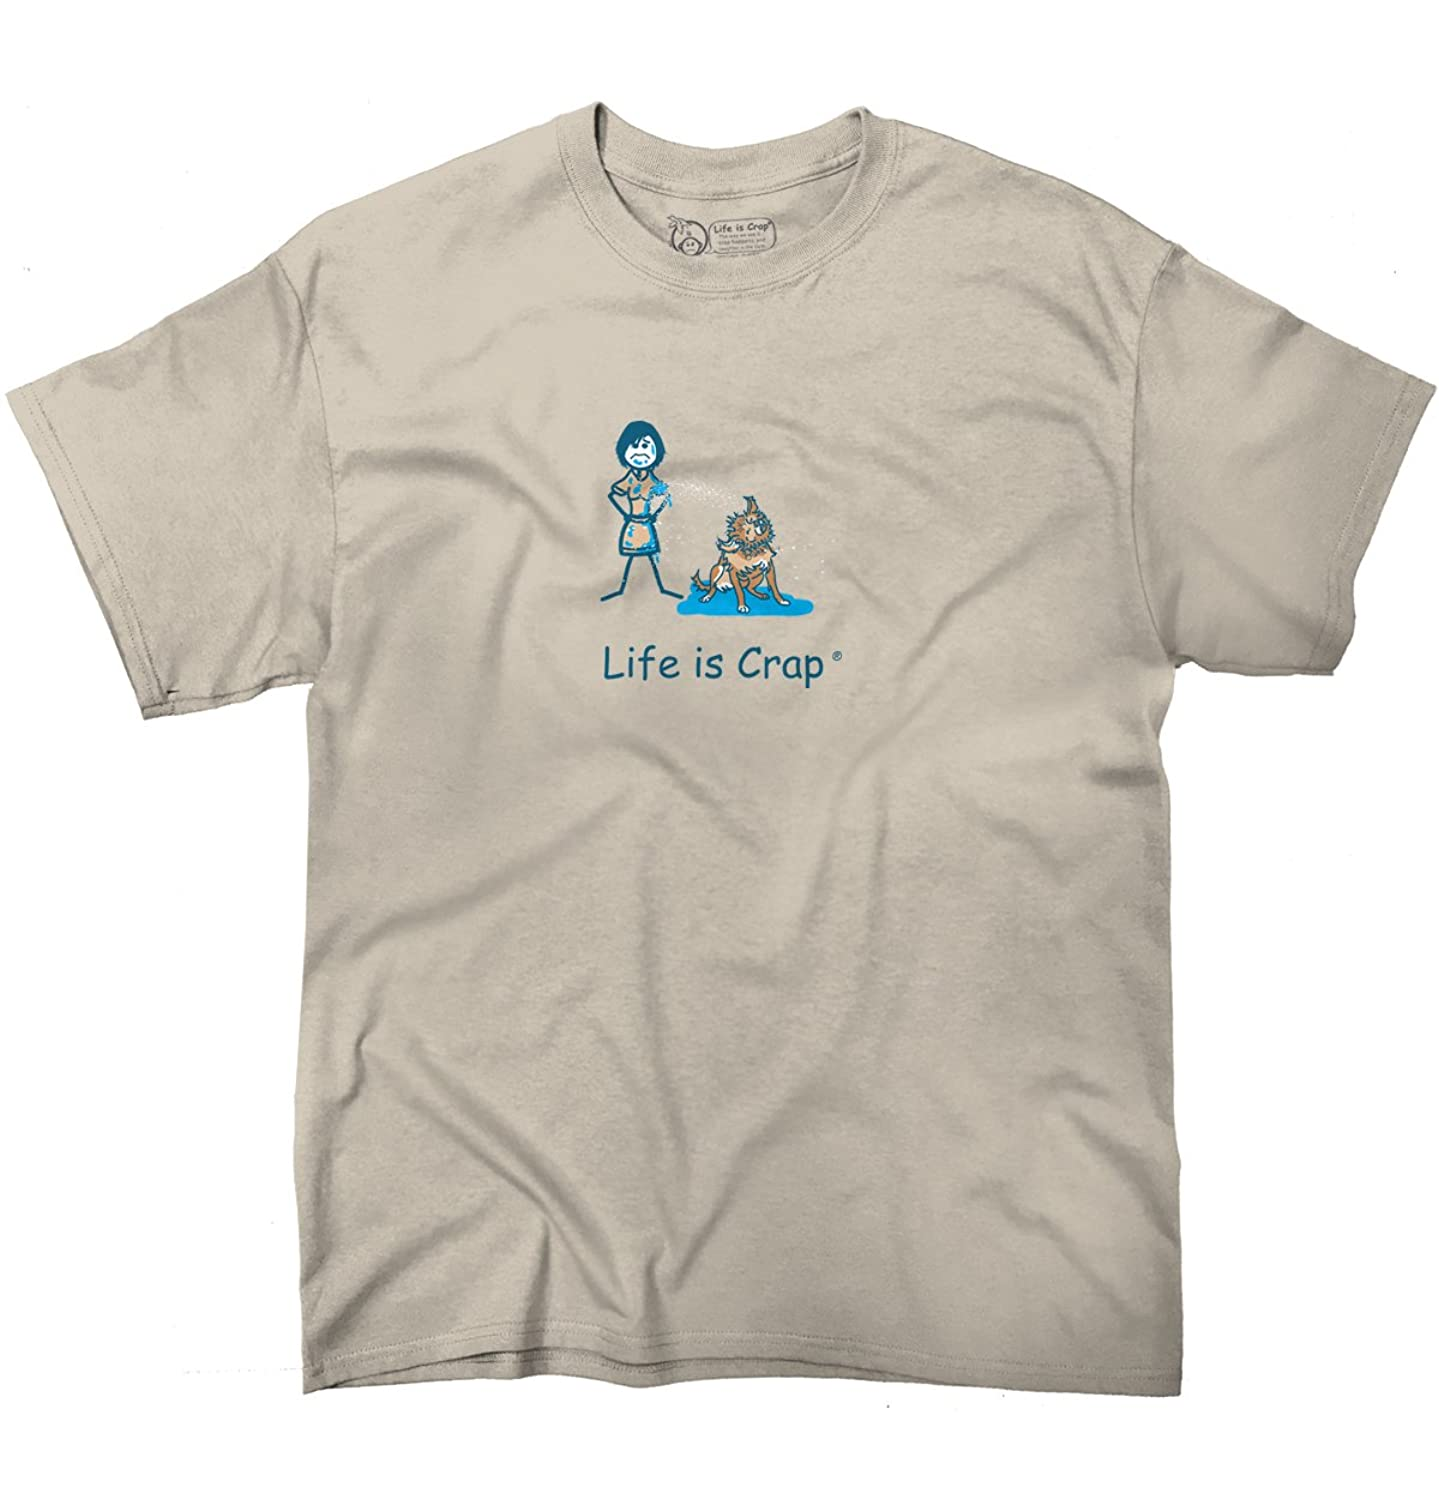 Life Is Crap Wet Dog Good Life Funny Shirts Gift Ideas Graphic T-Shirt Tee